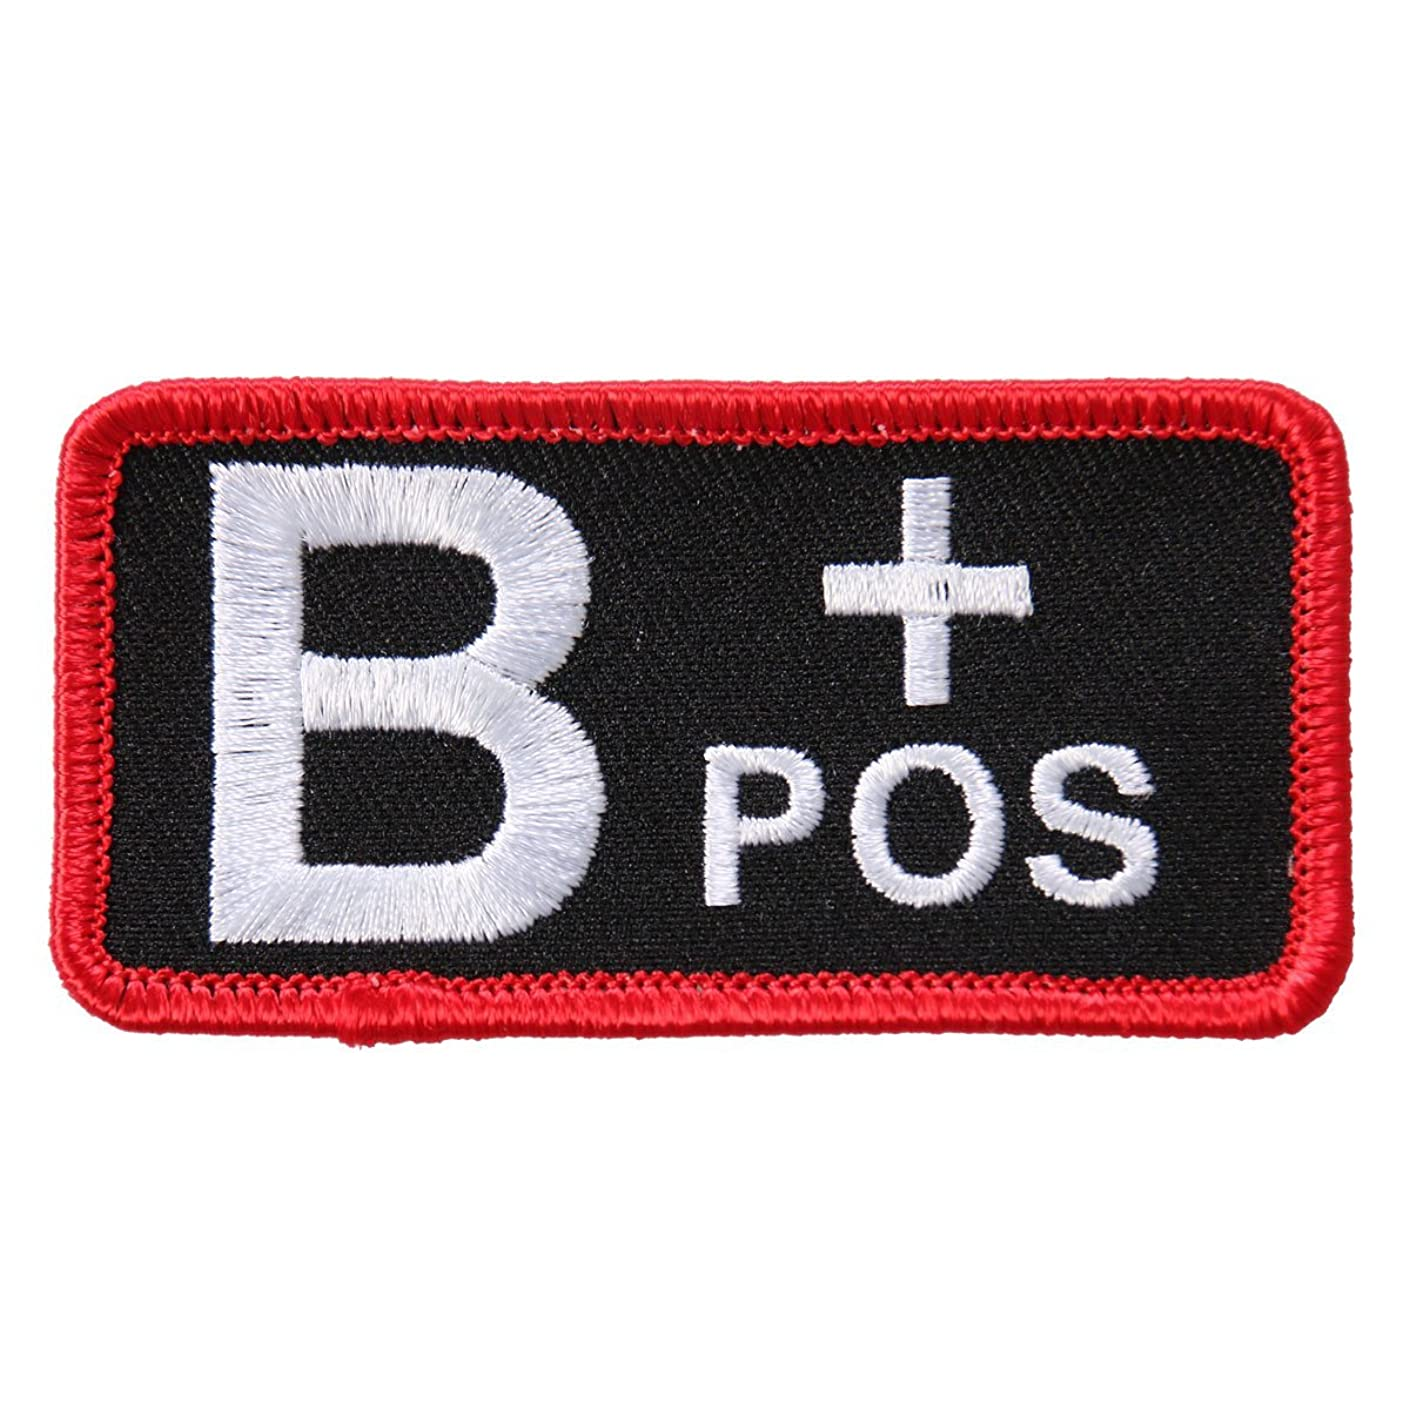 Hot Leathers, BLOOD TYPE B POS, High Thread Embroidered Iron-On / Saw-On, Heat Sealed Backing B+ Positive Rayon PATCH - 3